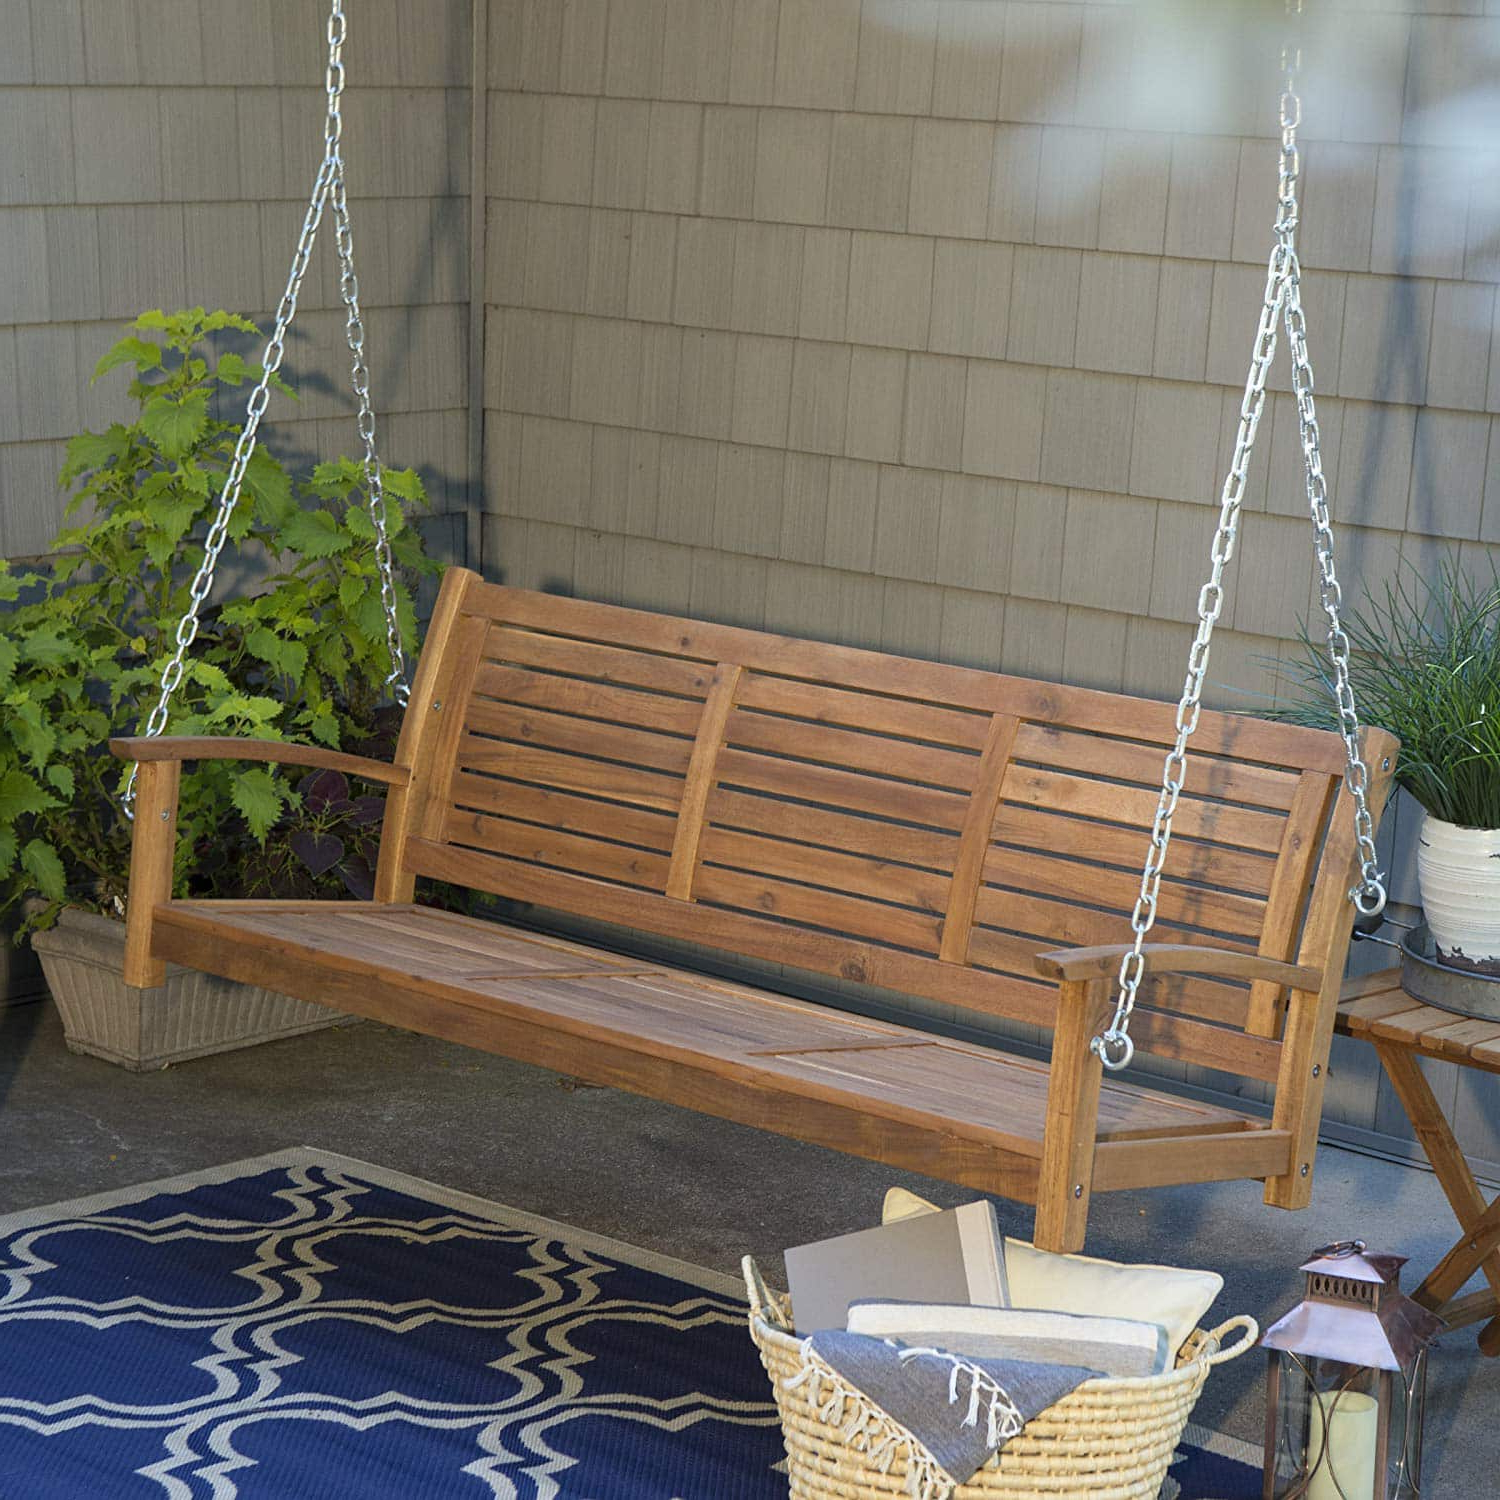 Buyer's Guide Pertaining To Canopy Patio Porch Swings With Pillows And Cup Holders (Gallery 17 of 25)